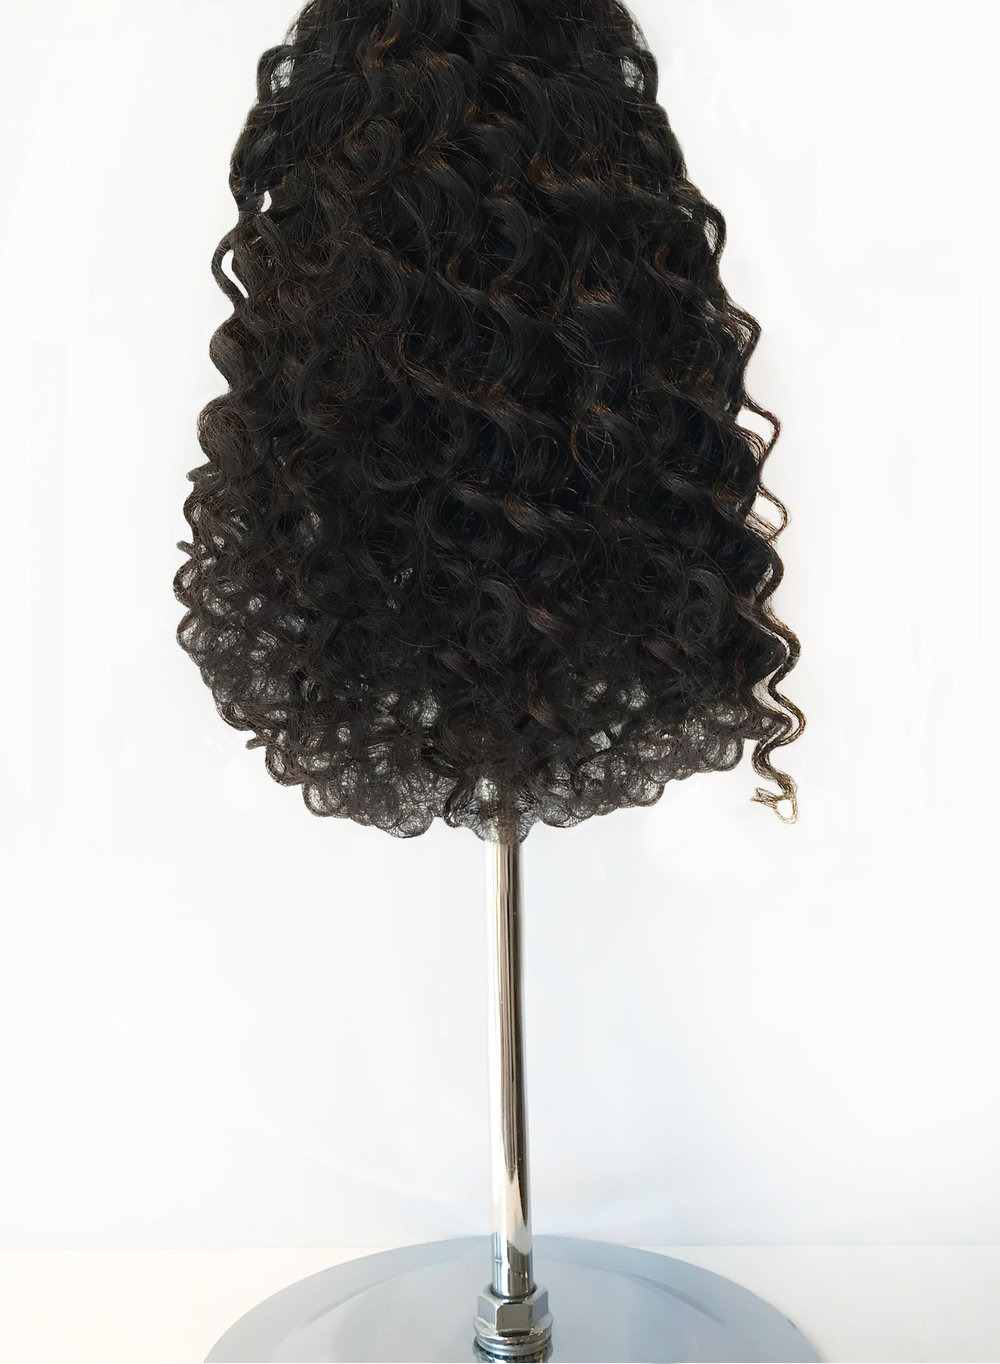 Our beautiful island inspired - Latina curl, gives you an undeniable heavily textured curls - that are set into a natural looking curl pattern and allows you to create a beautiful curly hairstyle or brush through for a soft natural afro-inspired style. It can be blow dried and flat ironed but not recommended as it will start to loosen the curl.